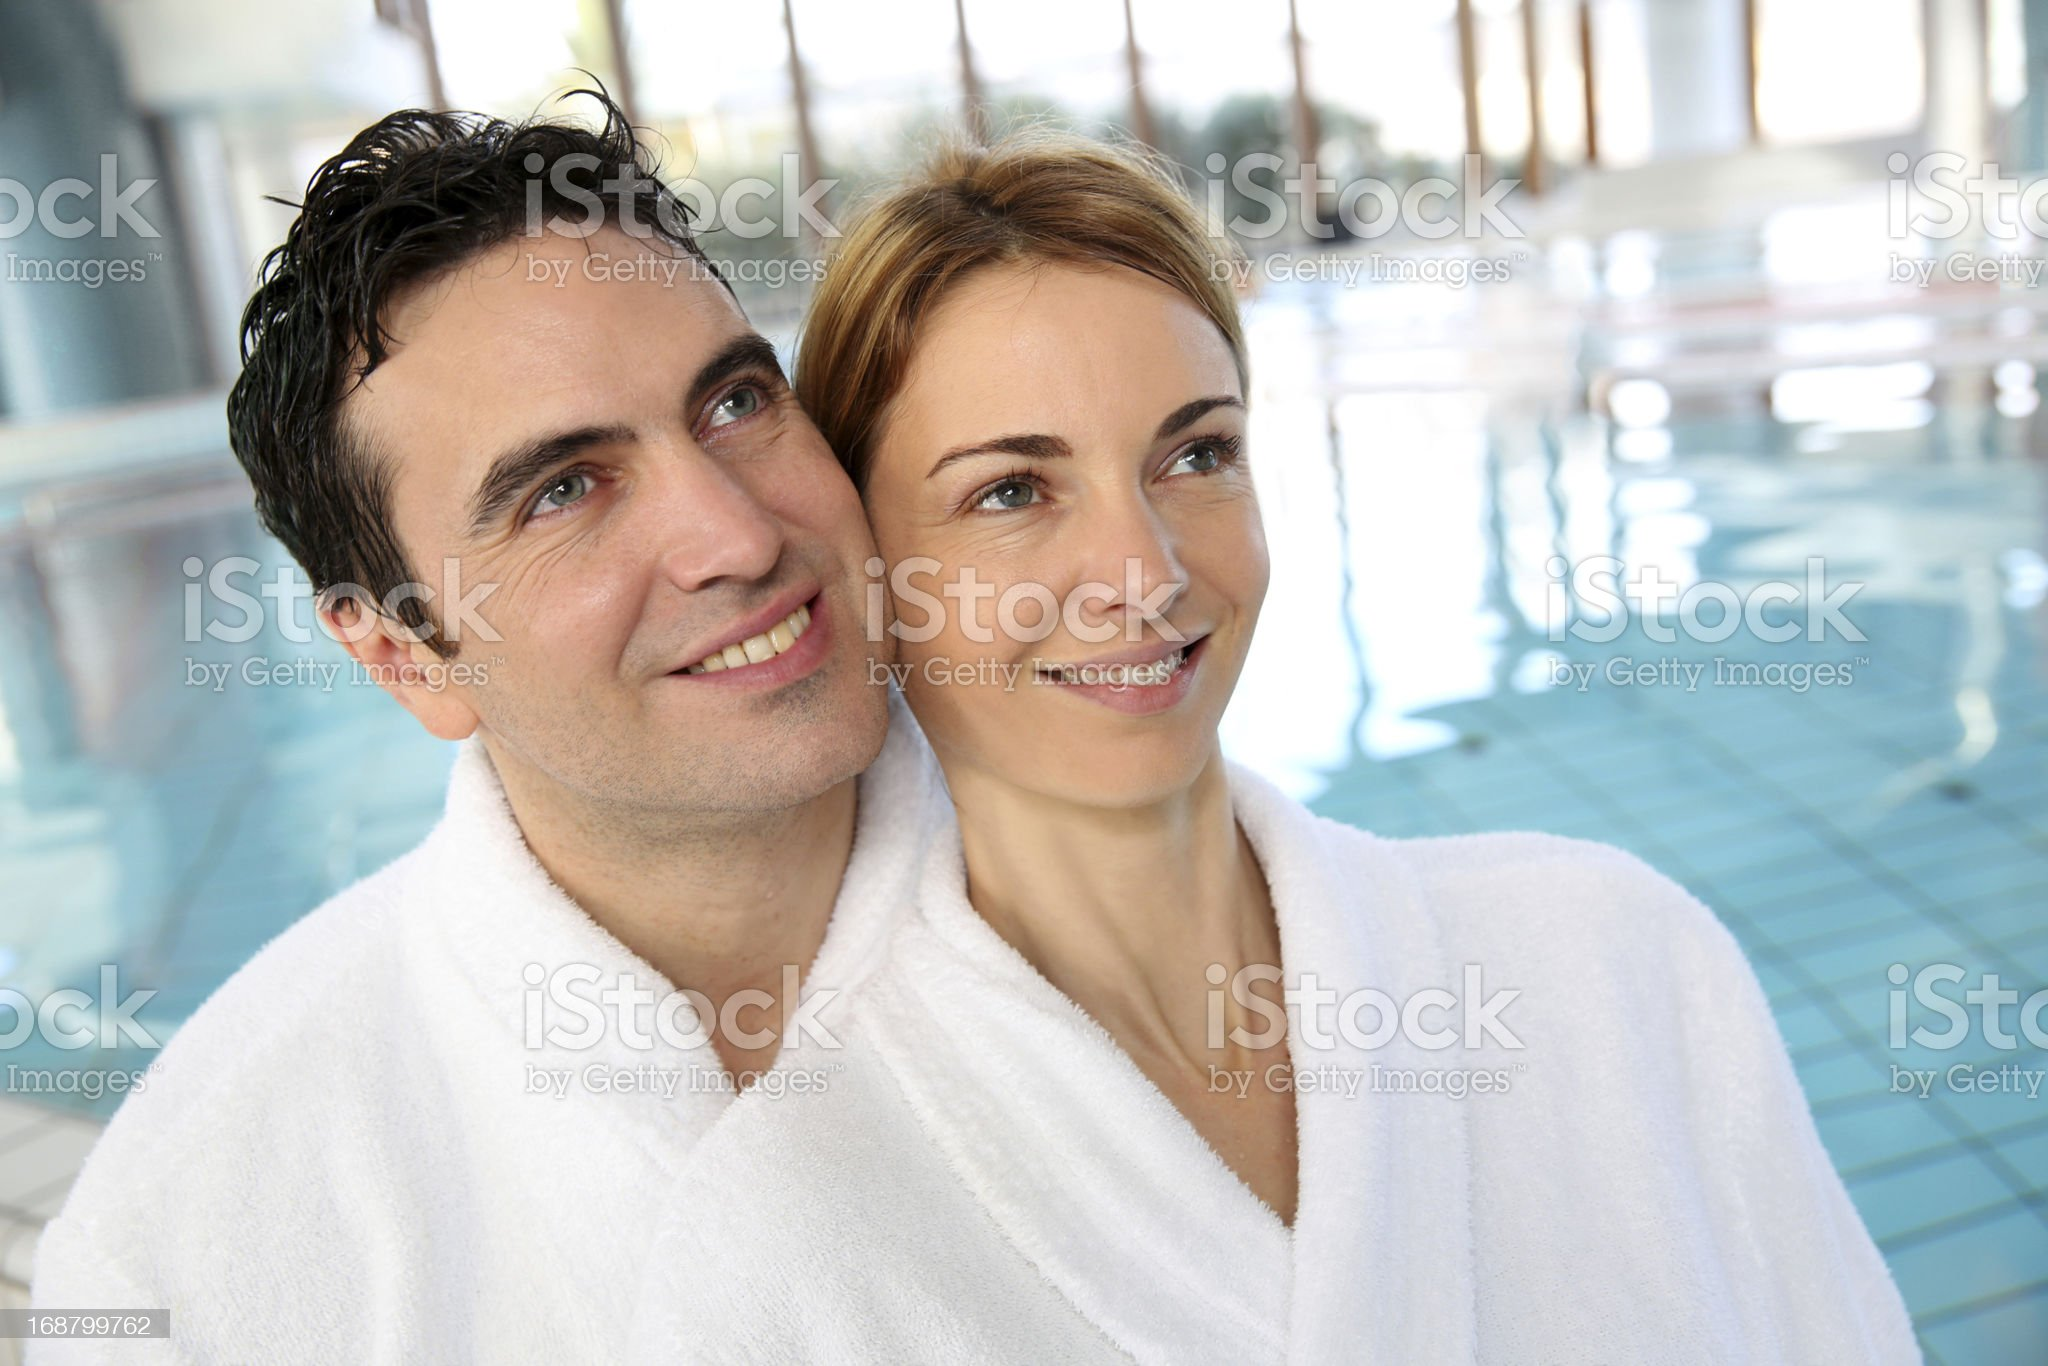 Couple in bathrobe standing at spa center royalty-free stock photo